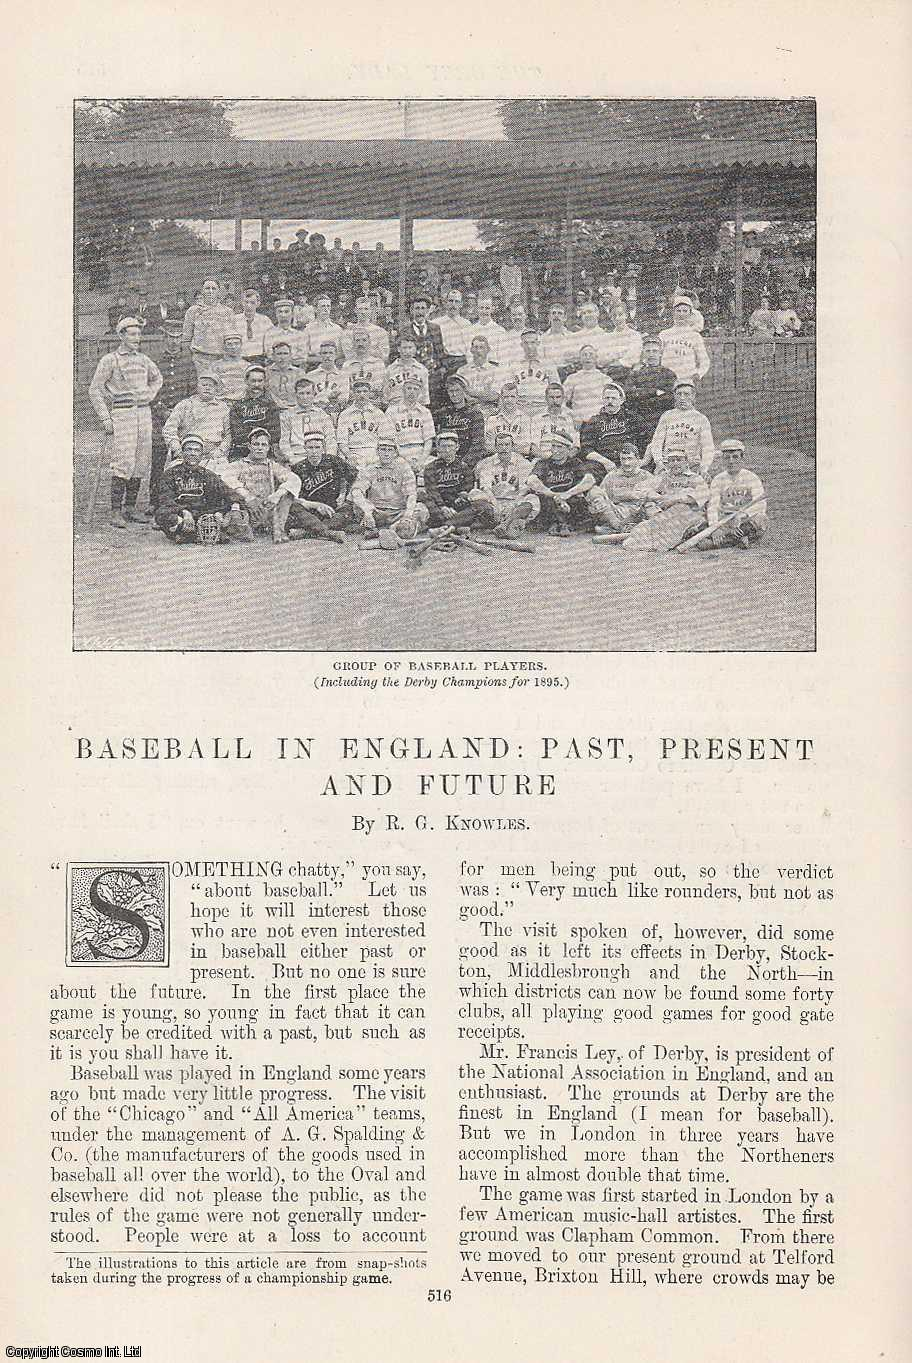 Baseball in England: Past, Present and Future., Knowles, R. G.